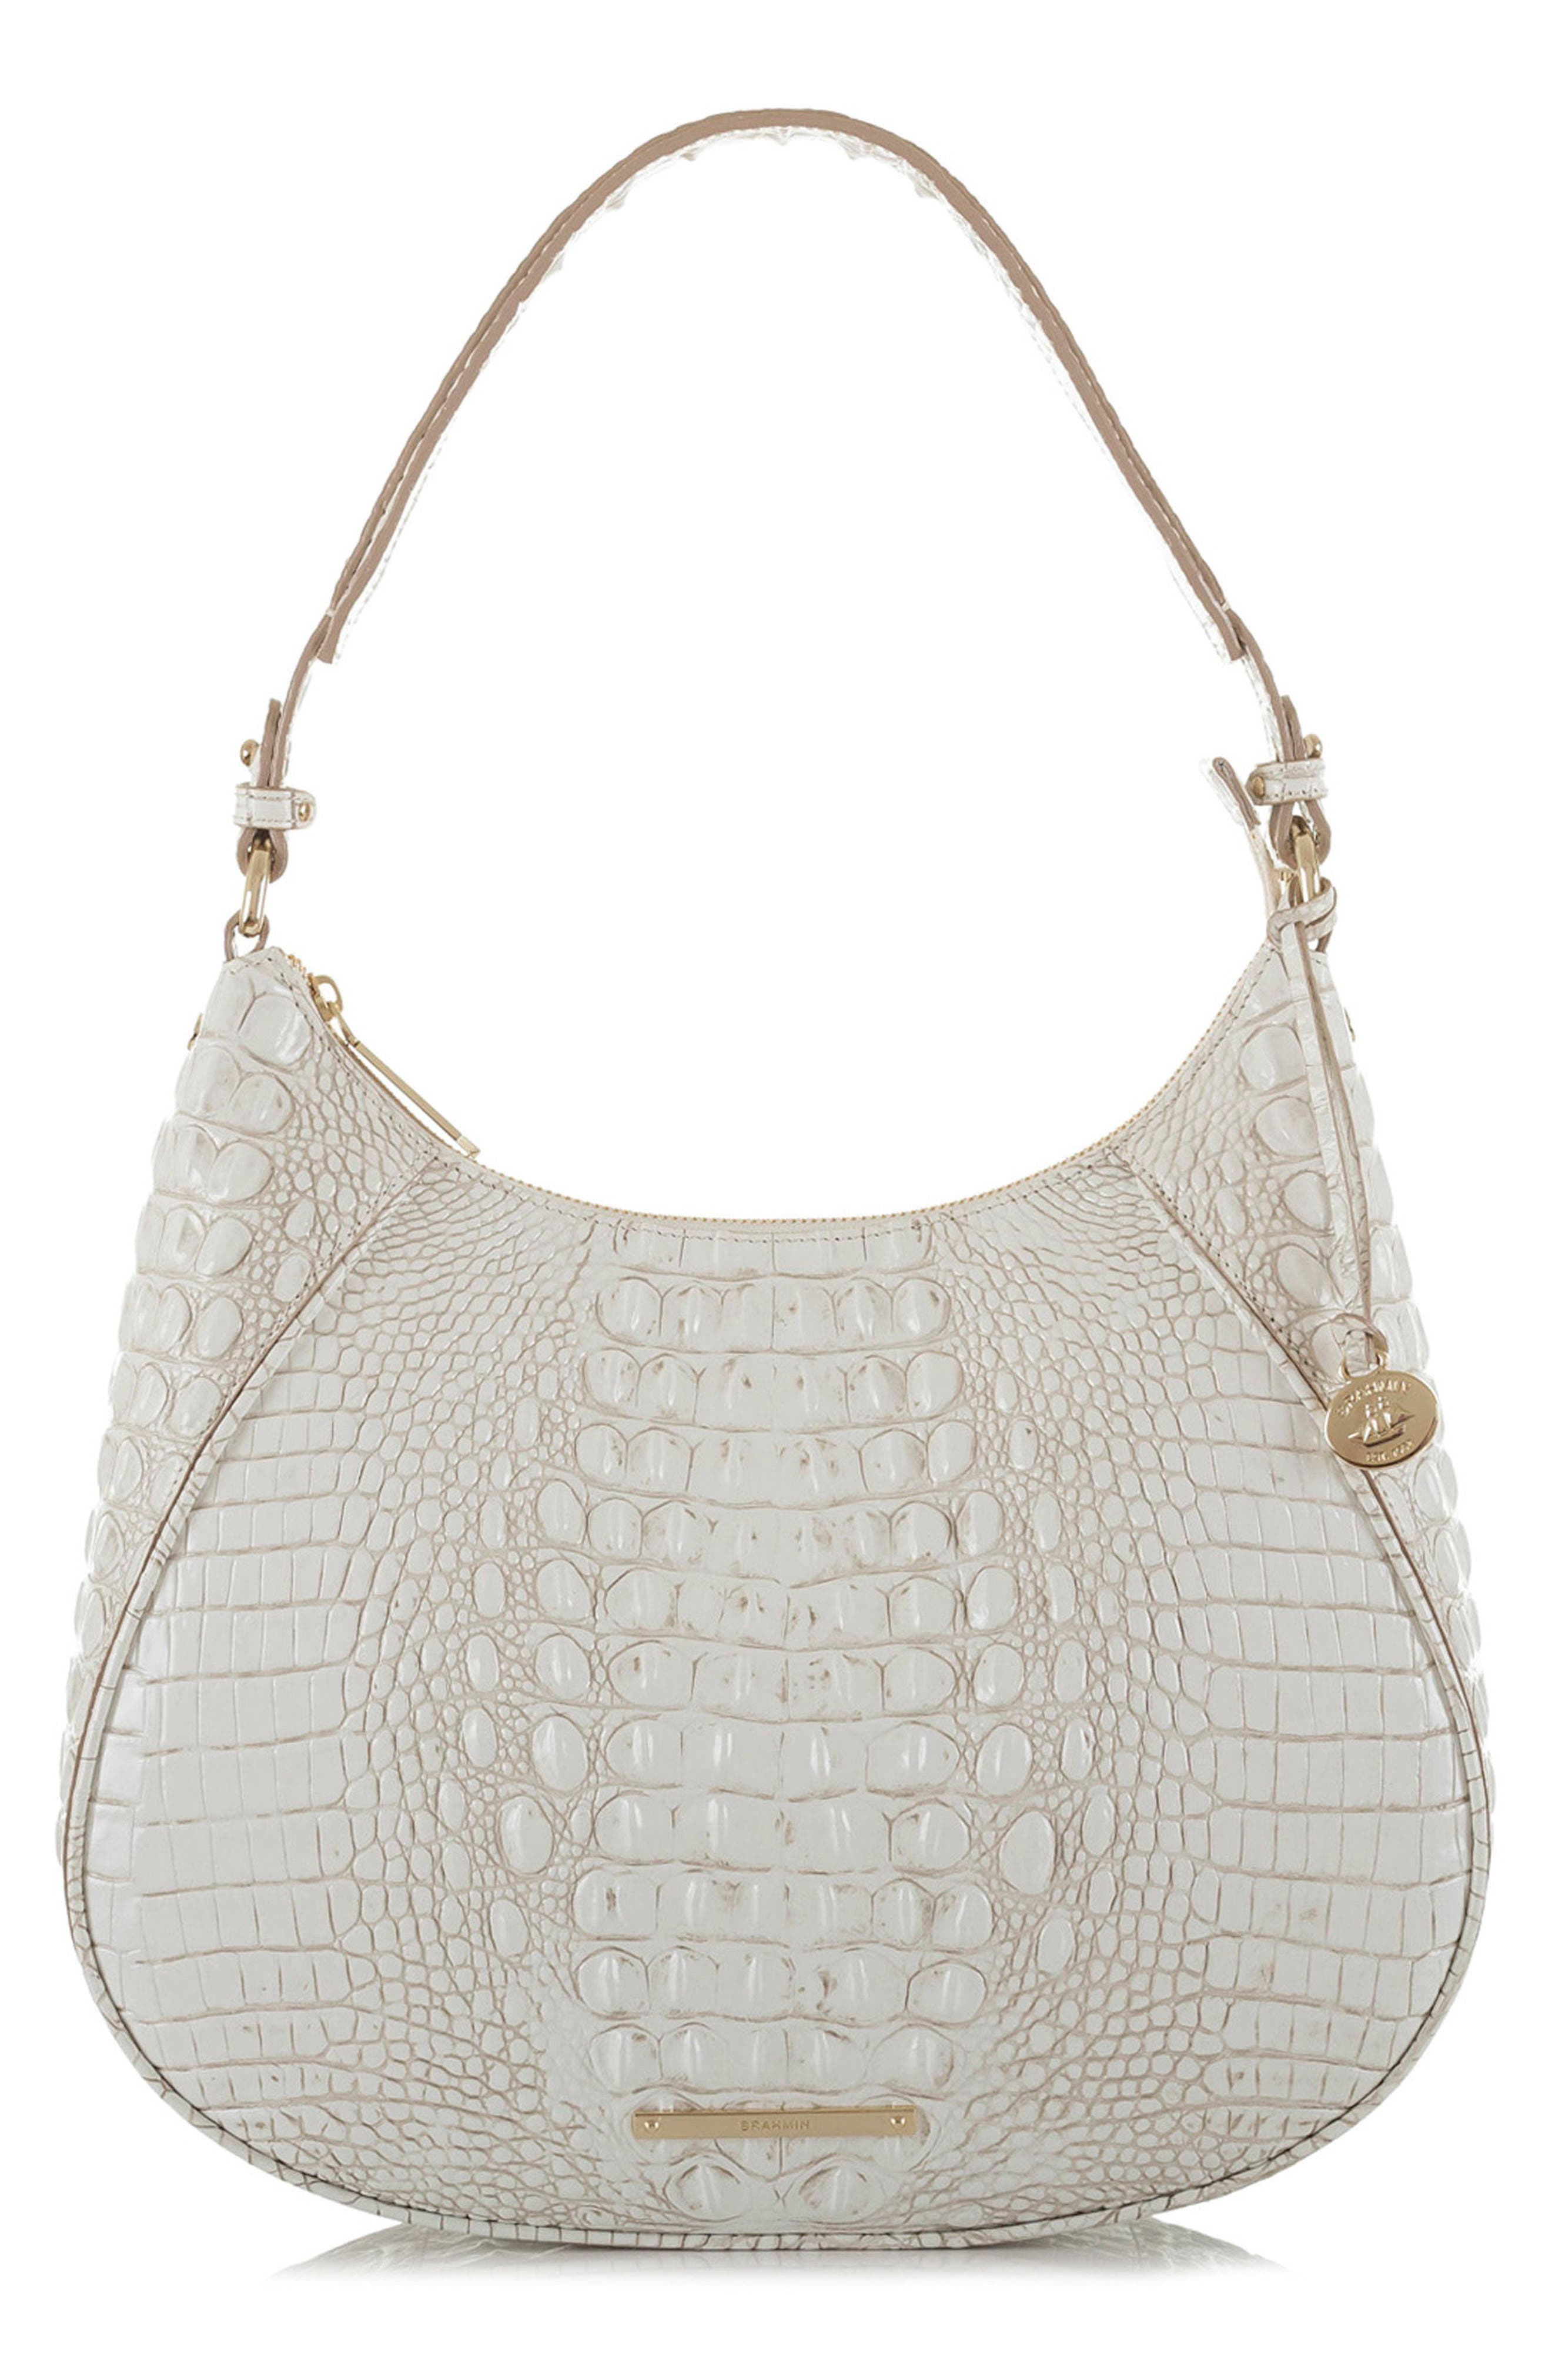 BRAHMIN,                             Melbourne Amira Shoulder Bag,                             Main thumbnail 1, color,                             100